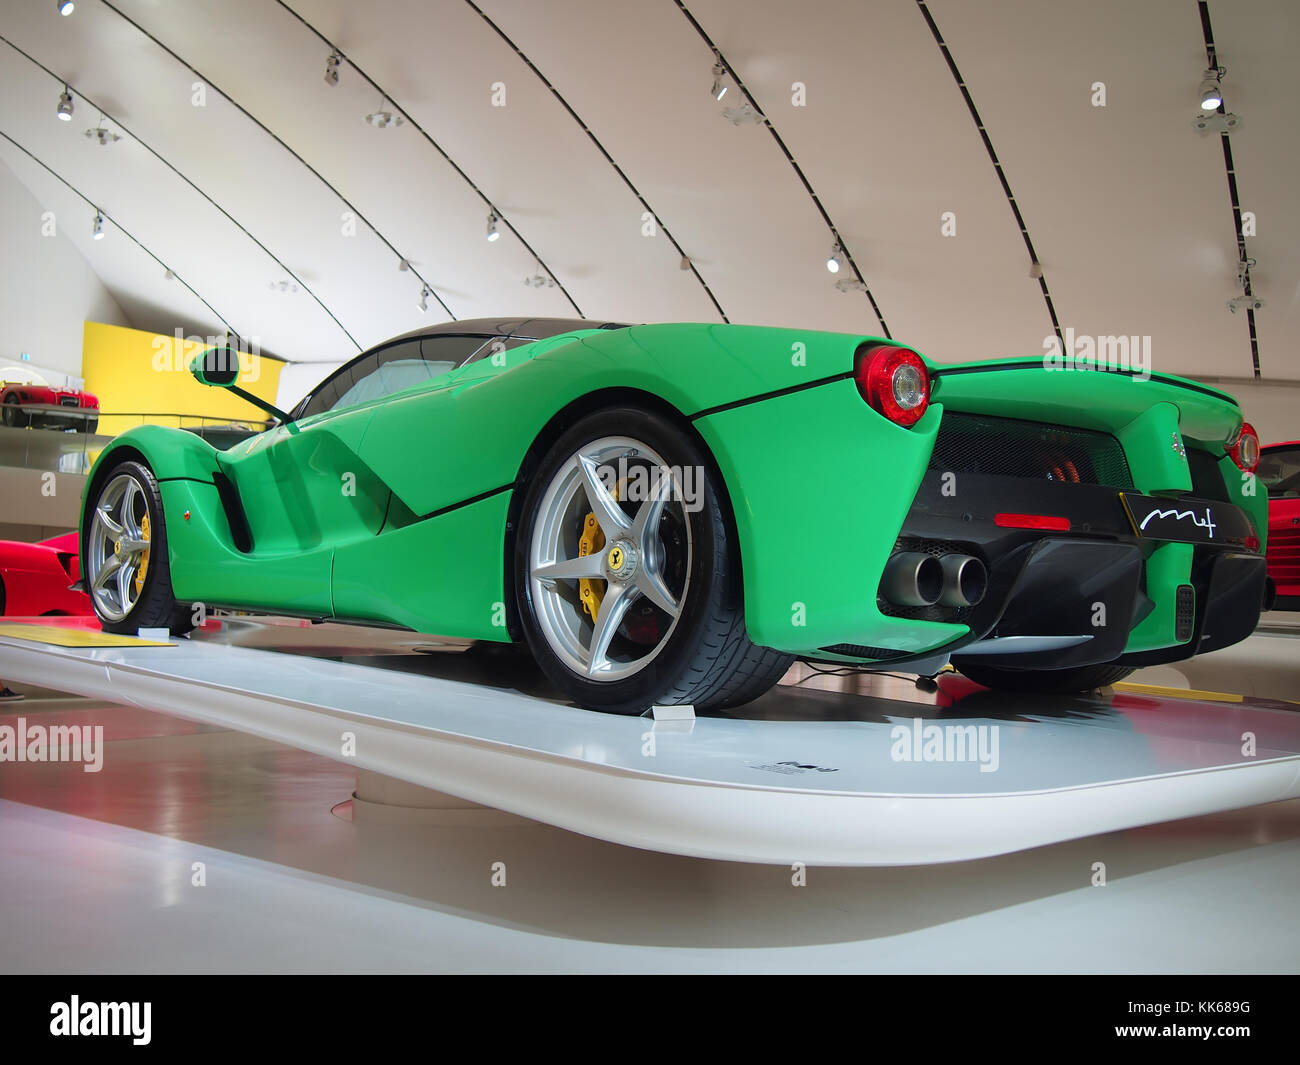 Jay Kay S Green Ferrari Laferrari In The Enzo Ferrari Museum In Stock Photo Alamy